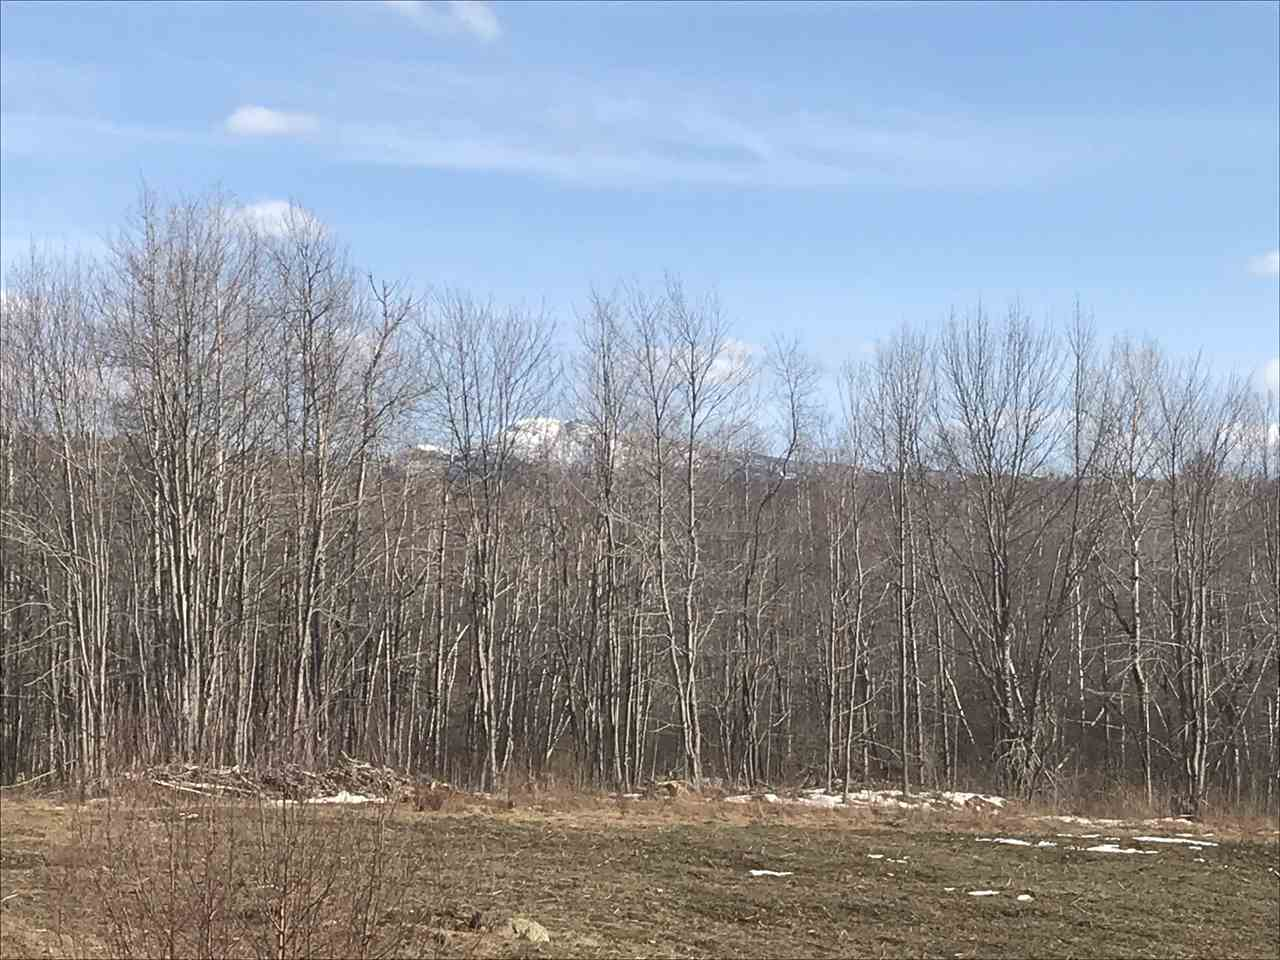 """Large parcel of open and wooded undeveloped land with lots of Town road frontage. This site is """"estate quality"""" or could be multi-lot sub-division. Soil tests have been performed. Mt Mansfield Views, potential for 2000 maple syrup taps, walking trails, excellent southwest exposure. Truly a unique property conveniently located with lots of potential."""